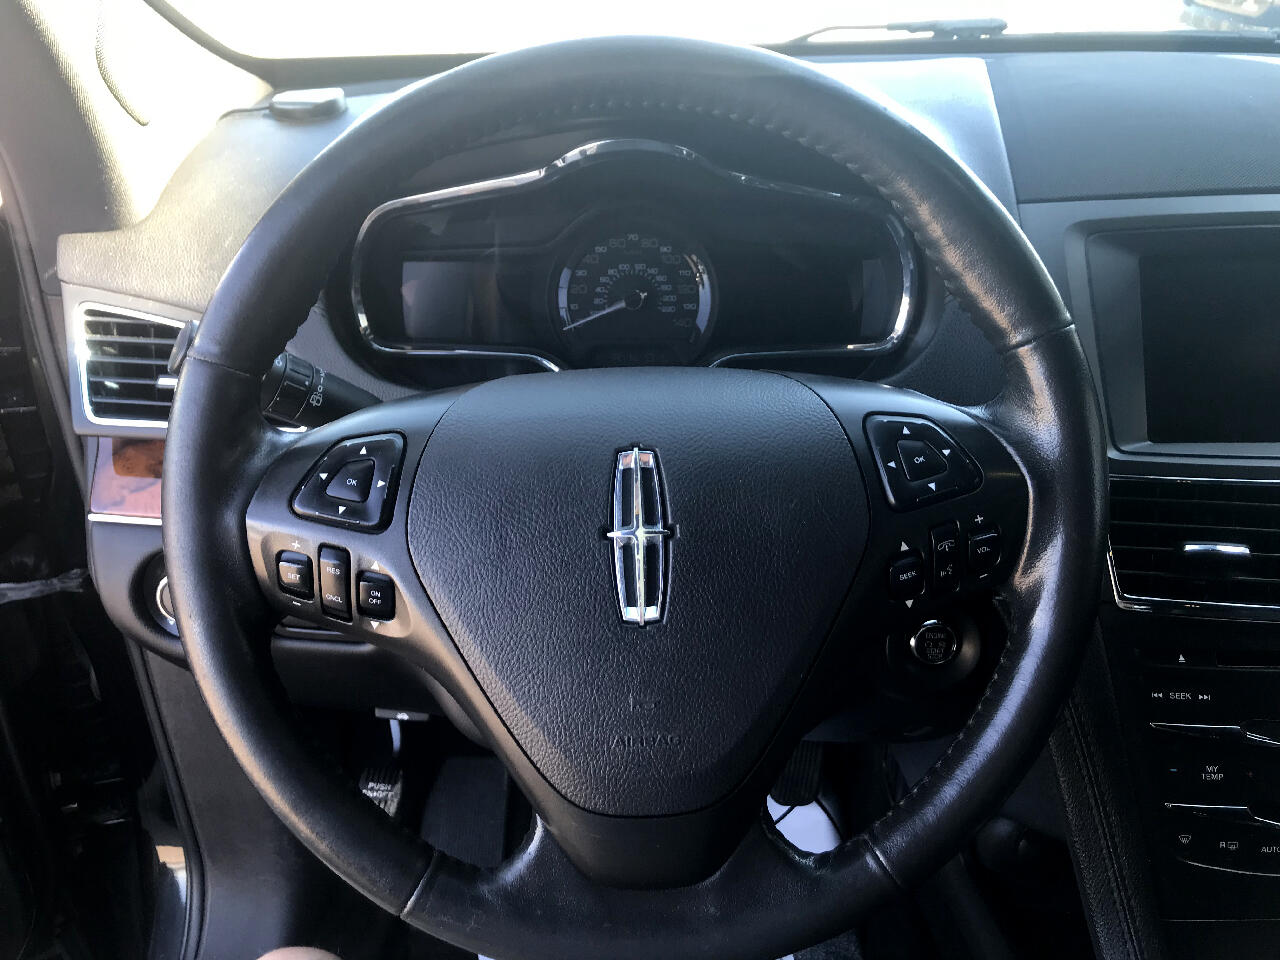 2014 Lincoln MKT 4dr Wgn 3.7L AWD w/Livery Pkg